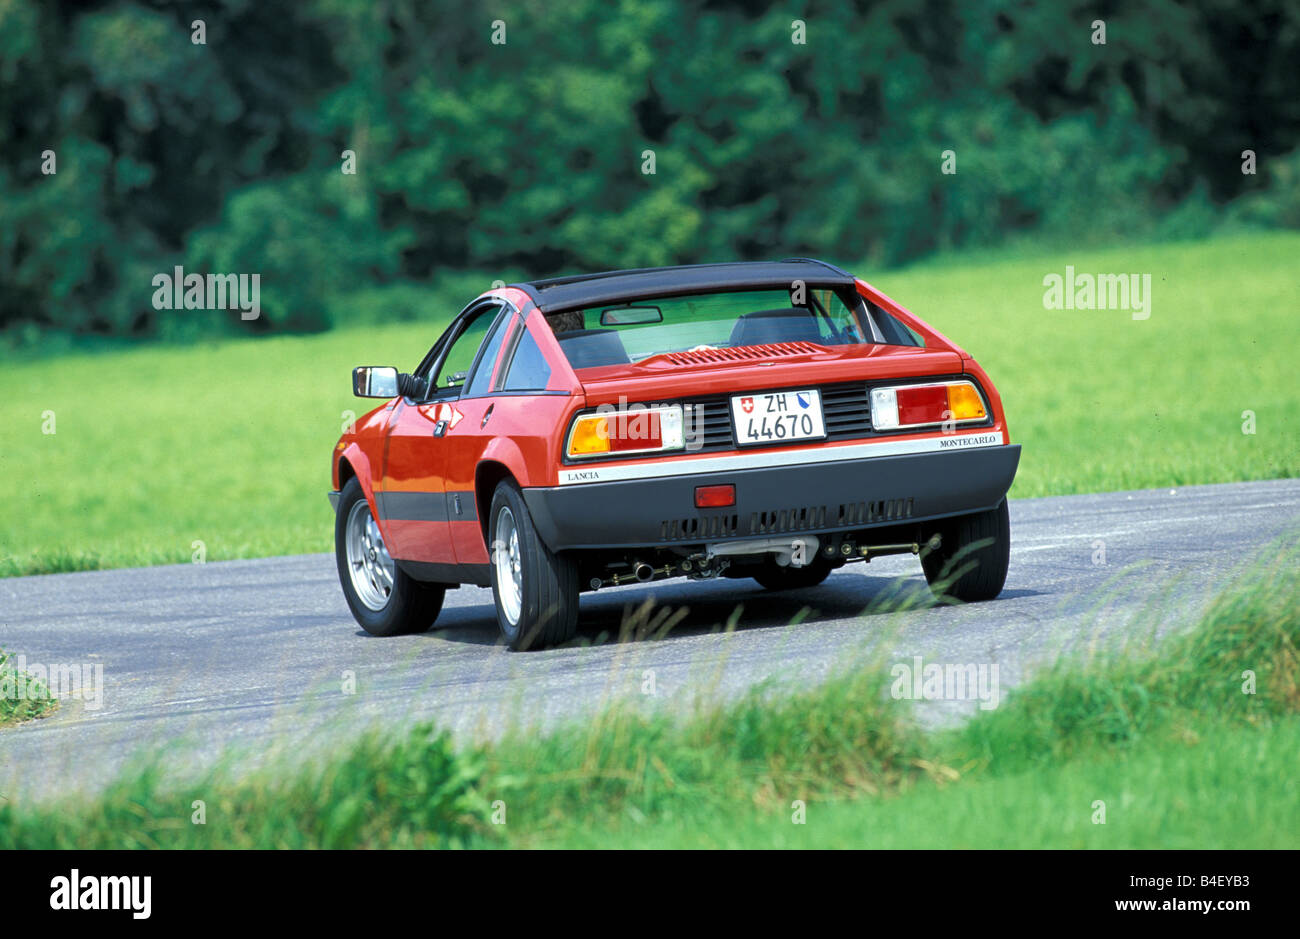 Lancia beta stock photos lancia beta stock images alamy car lancia beta montecarlo old car red coup coupe sports vanachro Images